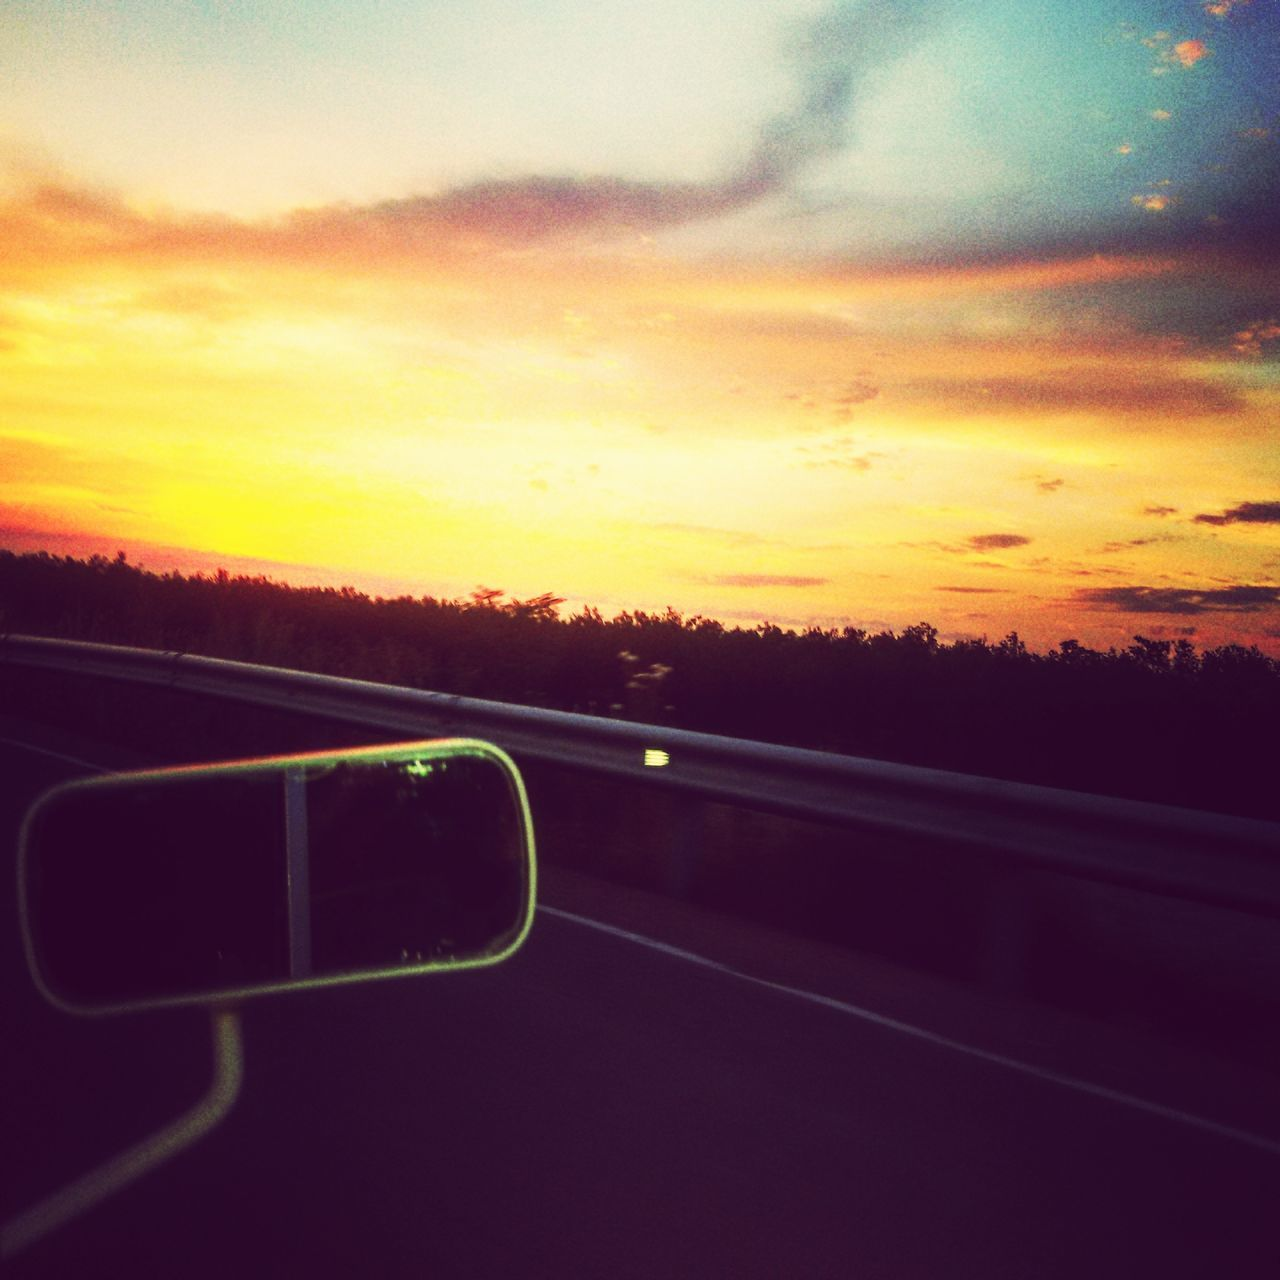 sunset, sky, transportation, cloud - sky, scenics, road, nature, no people, landscape, beauty in nature, tree, outdoors, day